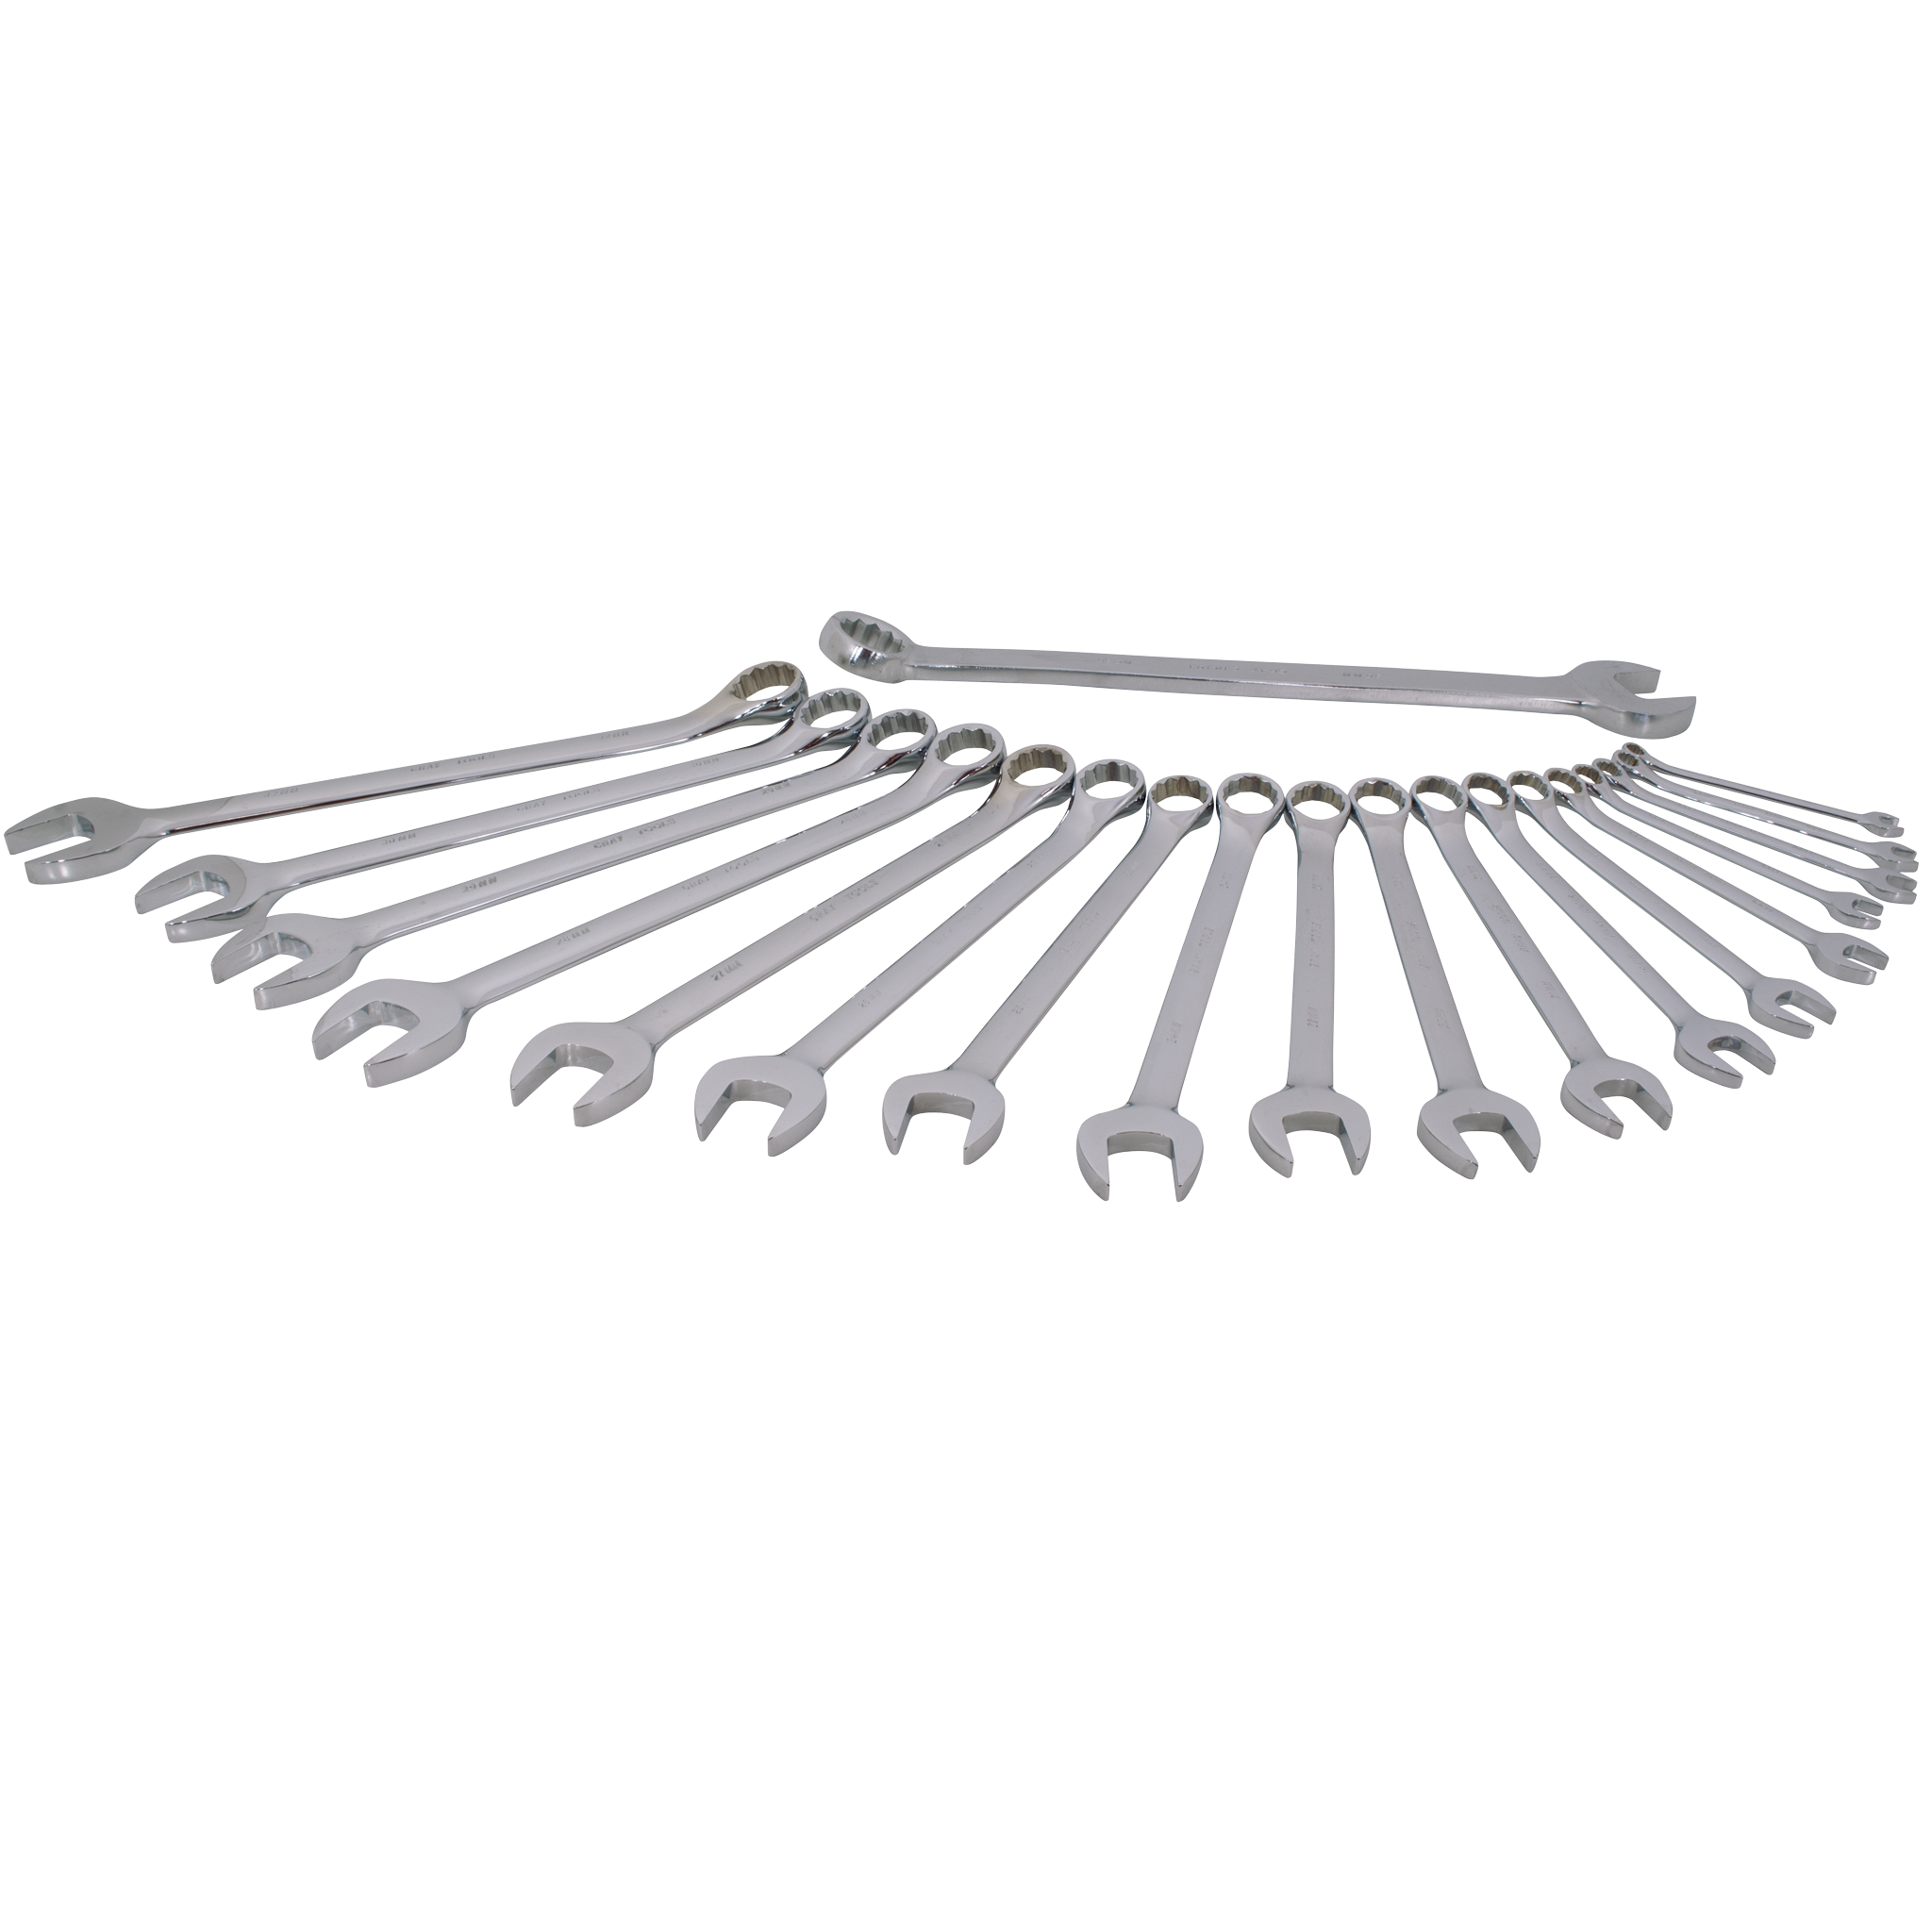 19 Piece 12 Point Metric Mirror Chrome & Satin Finish Wrench Set